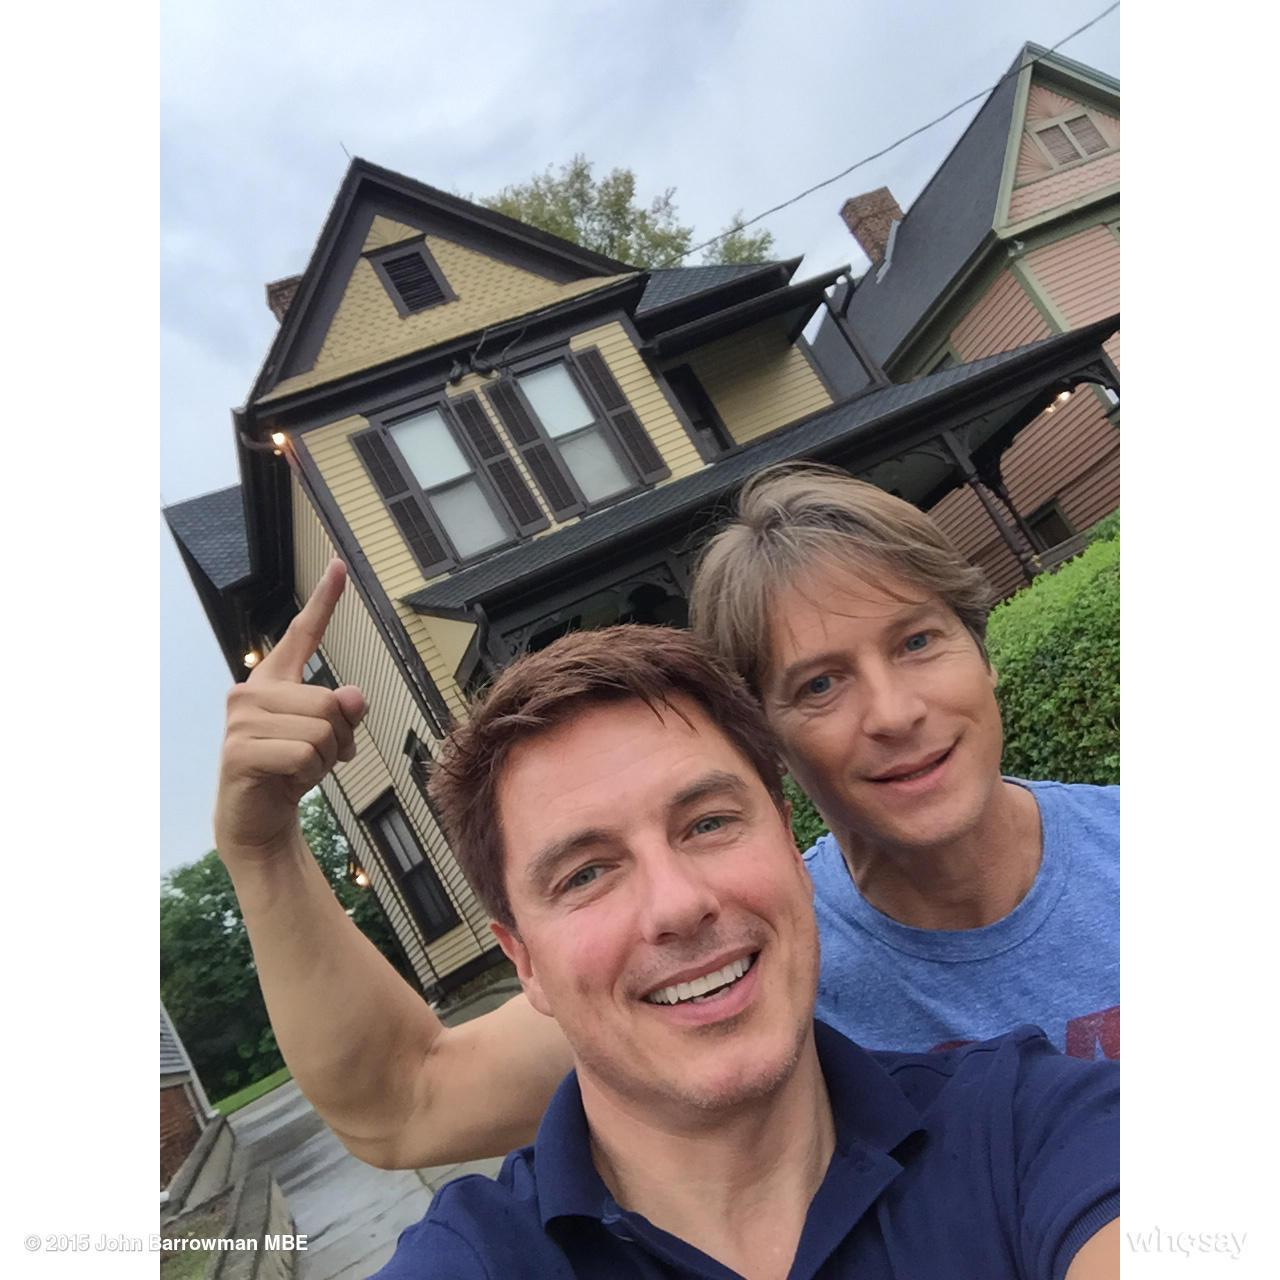 Another picture from today. We visited the #MartinLutheKing home. @DragonCon #DragonCon #DragonCon2015  Jb http://t.co/R9WkVVQeze